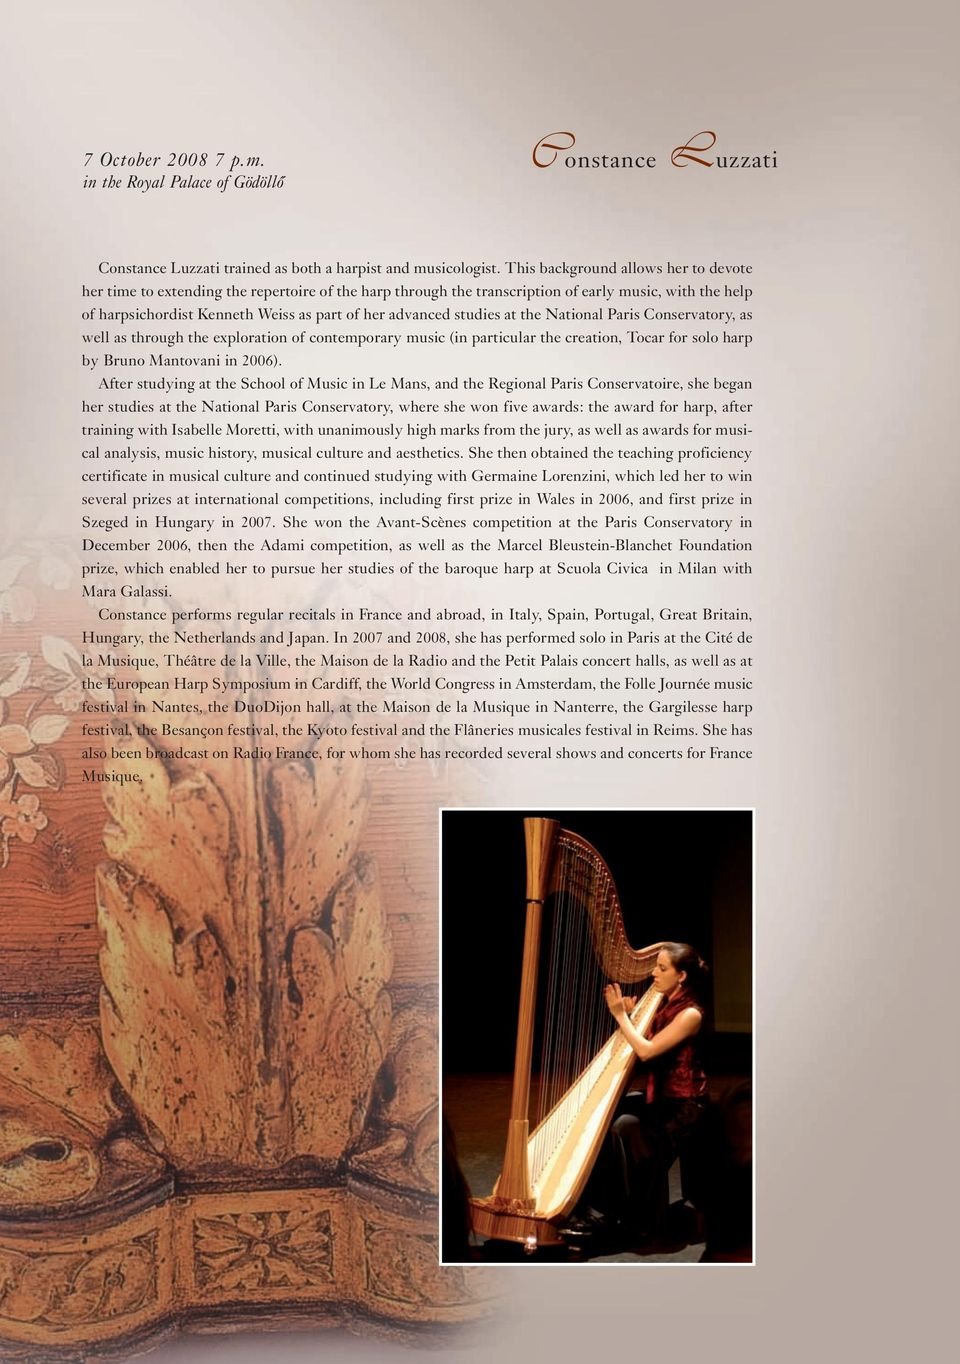 studies at the National Paris Conservatory, as well as through the exploration of contemporary music (in particular the creation, Tocar for solo harp by Bruno Mantovani in 2006).